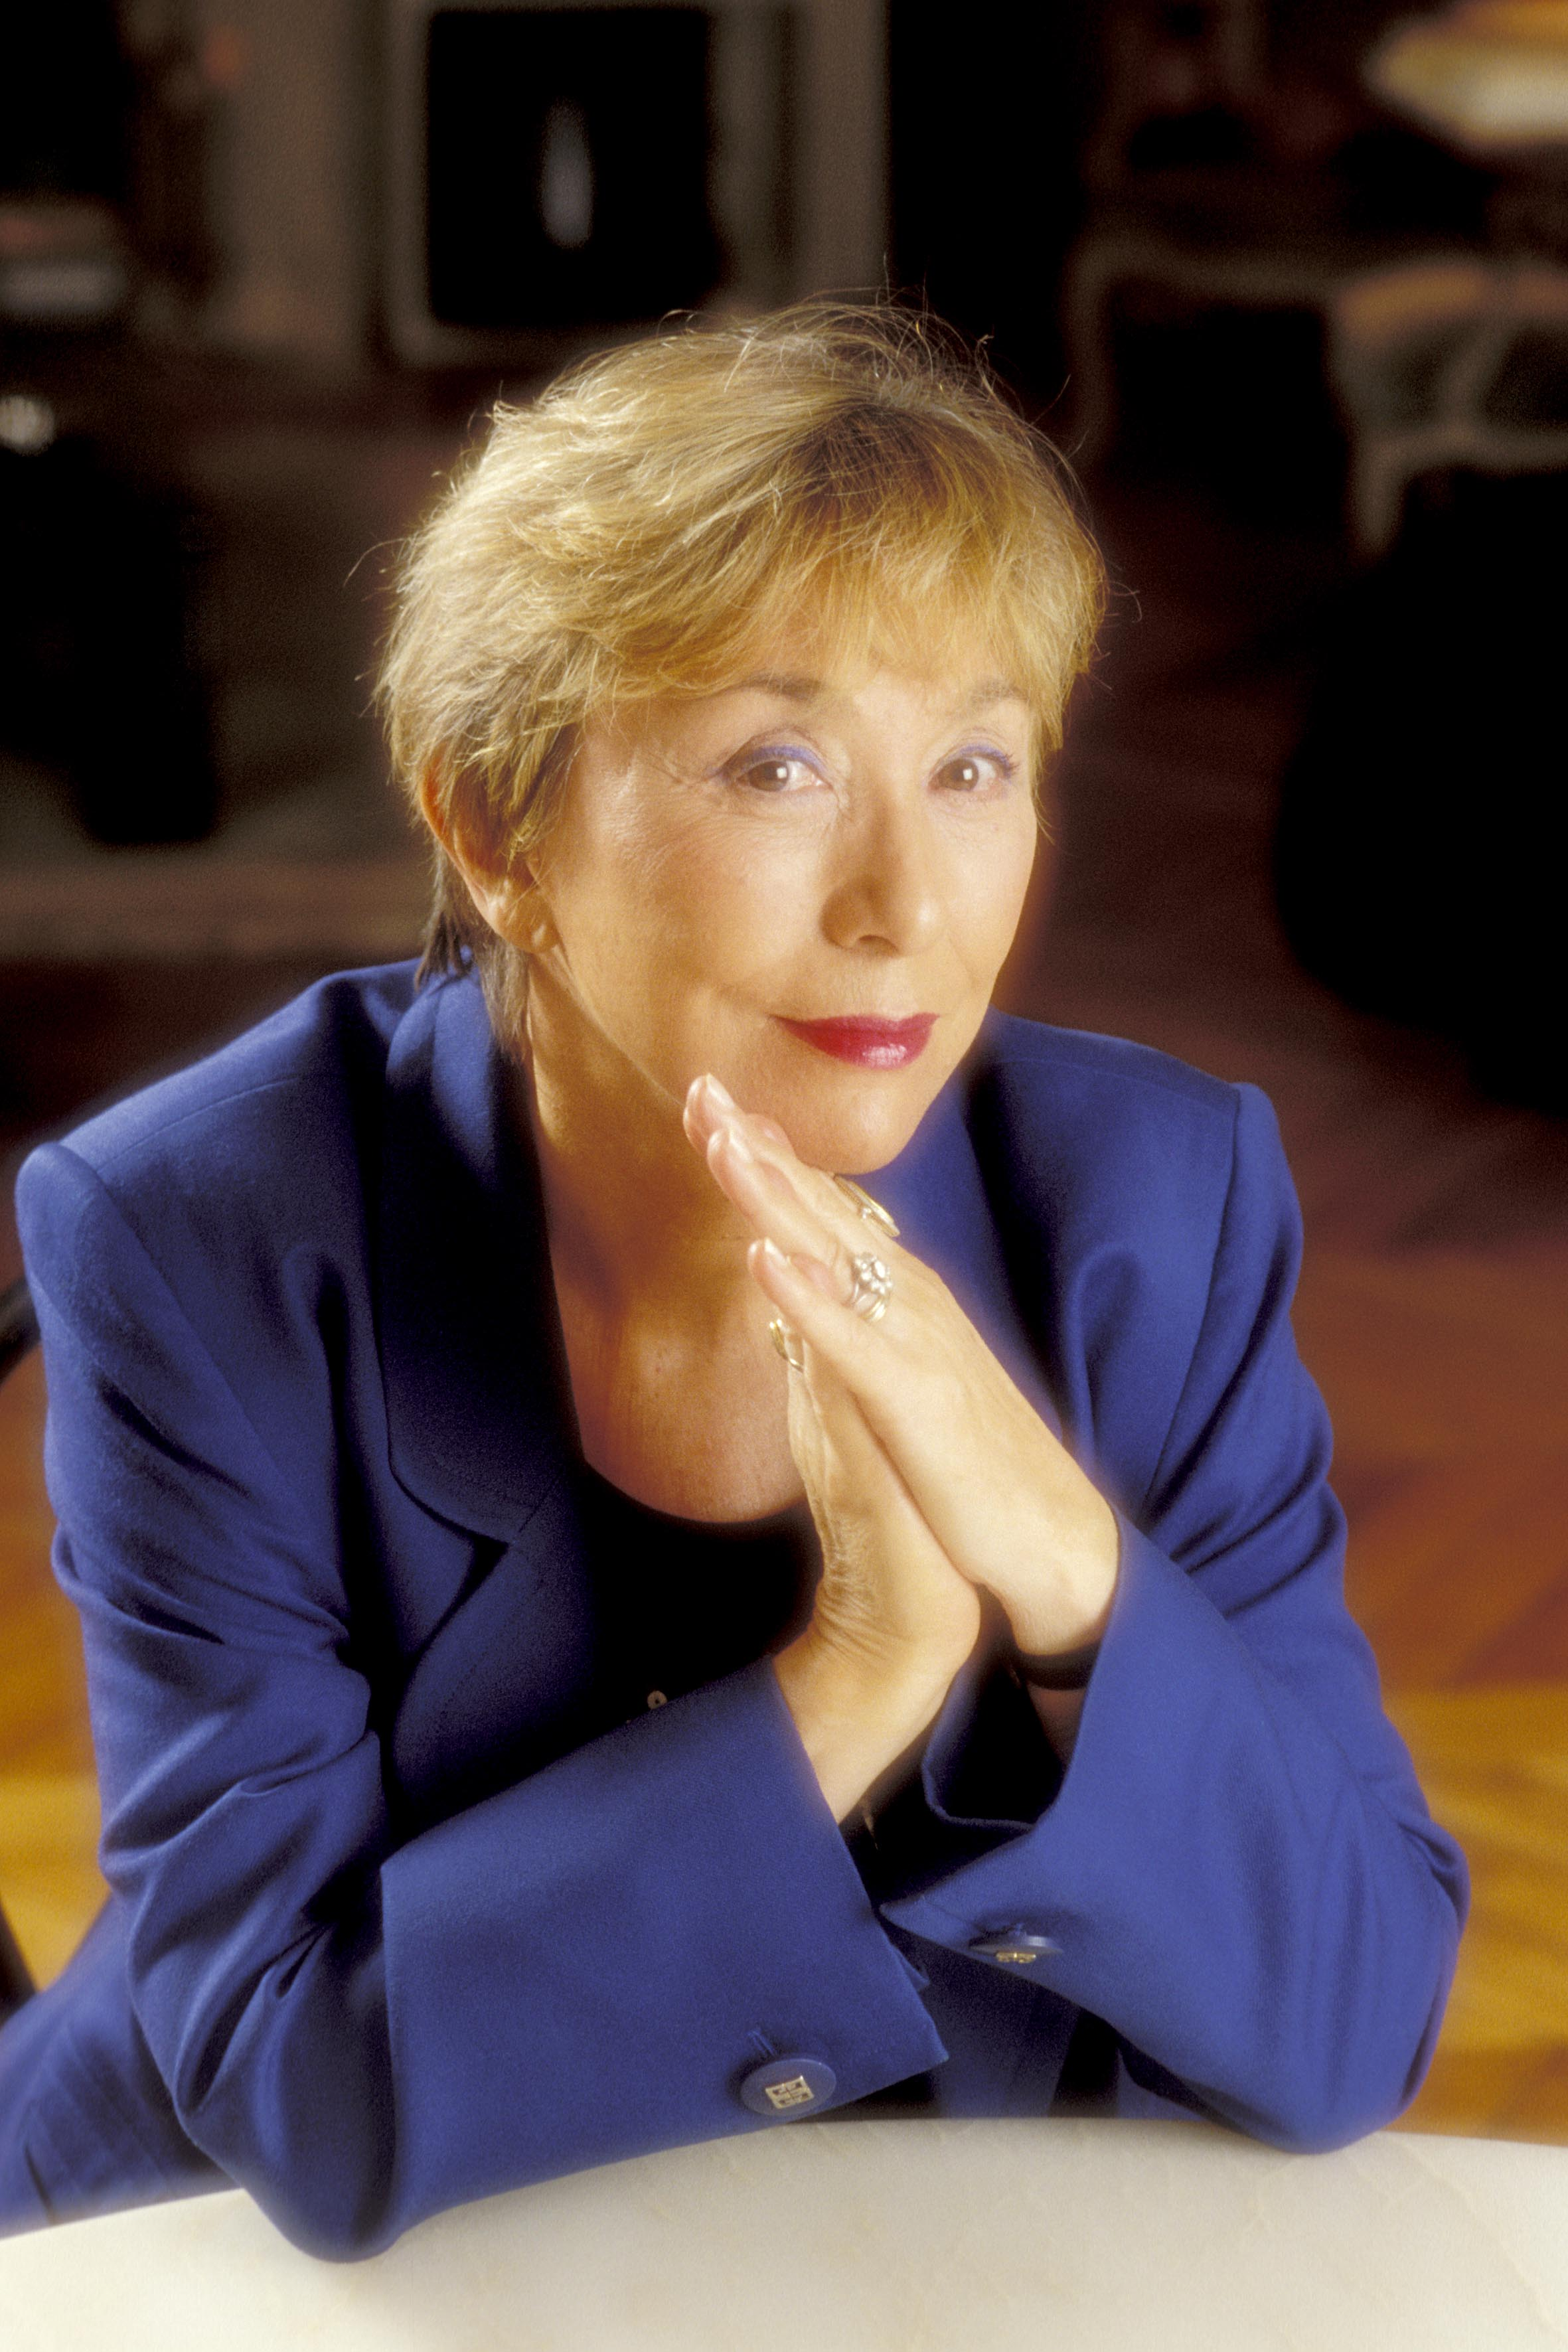 Kristeva photo J.Foley/Opale